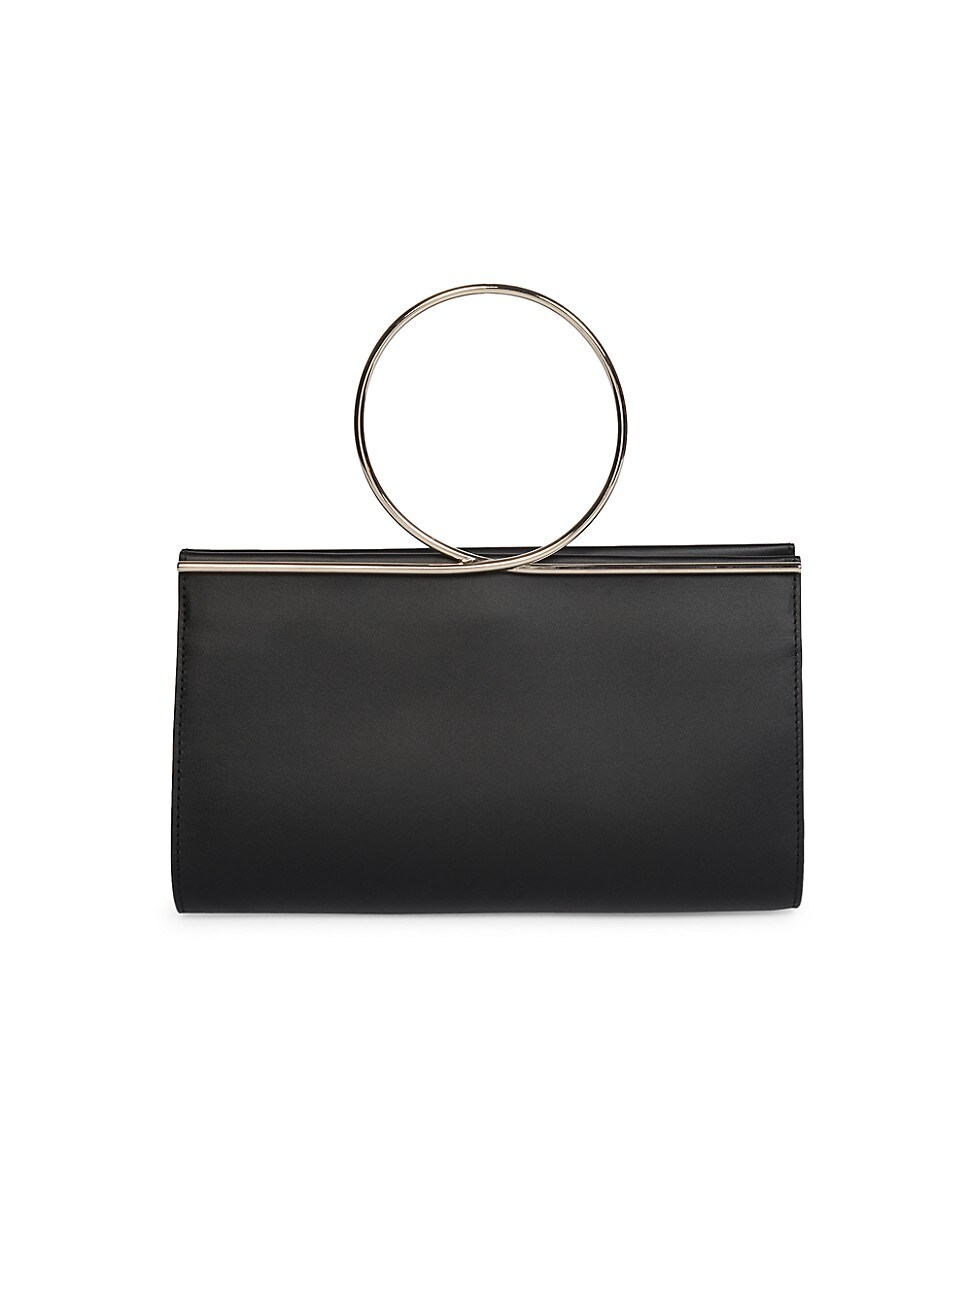 Paco Rabanne WOMEN'S WANNABE LEATHER CLUTCH